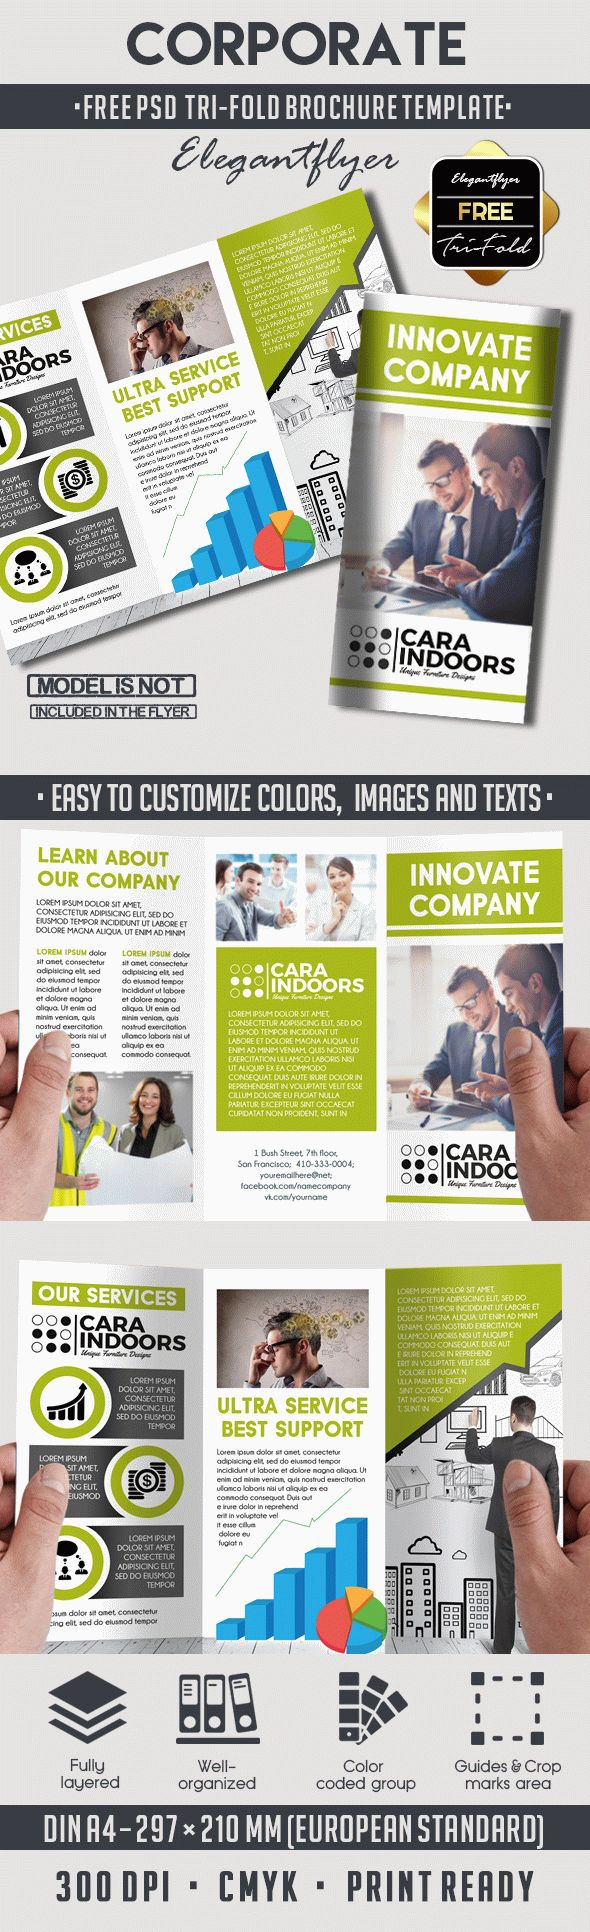 Corporate Free PSD TriFold PSD Brochure Template by ElegantFlyer – Advertising Brochure Template